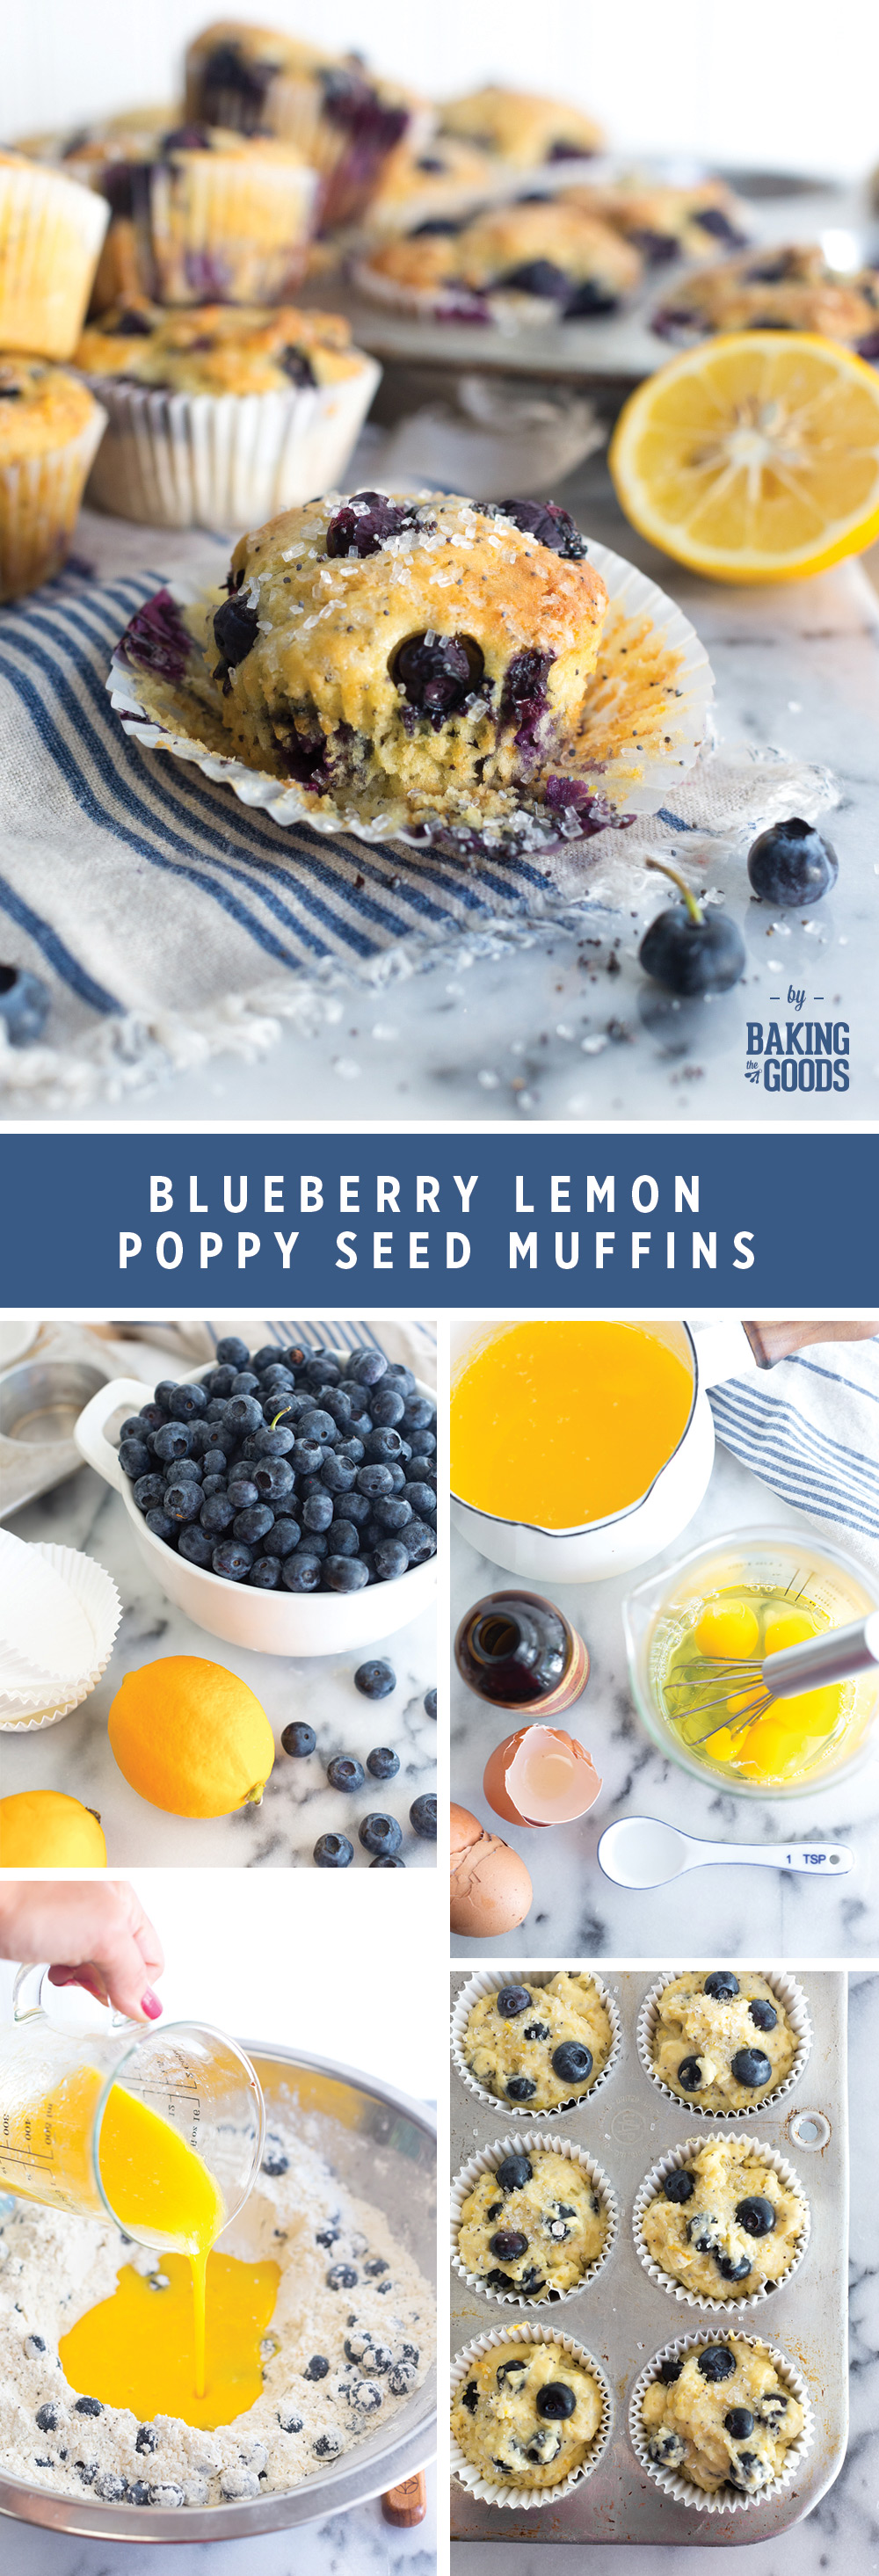 Blueberry Lemon Poppy Seed Muffins by Baking The Goods.